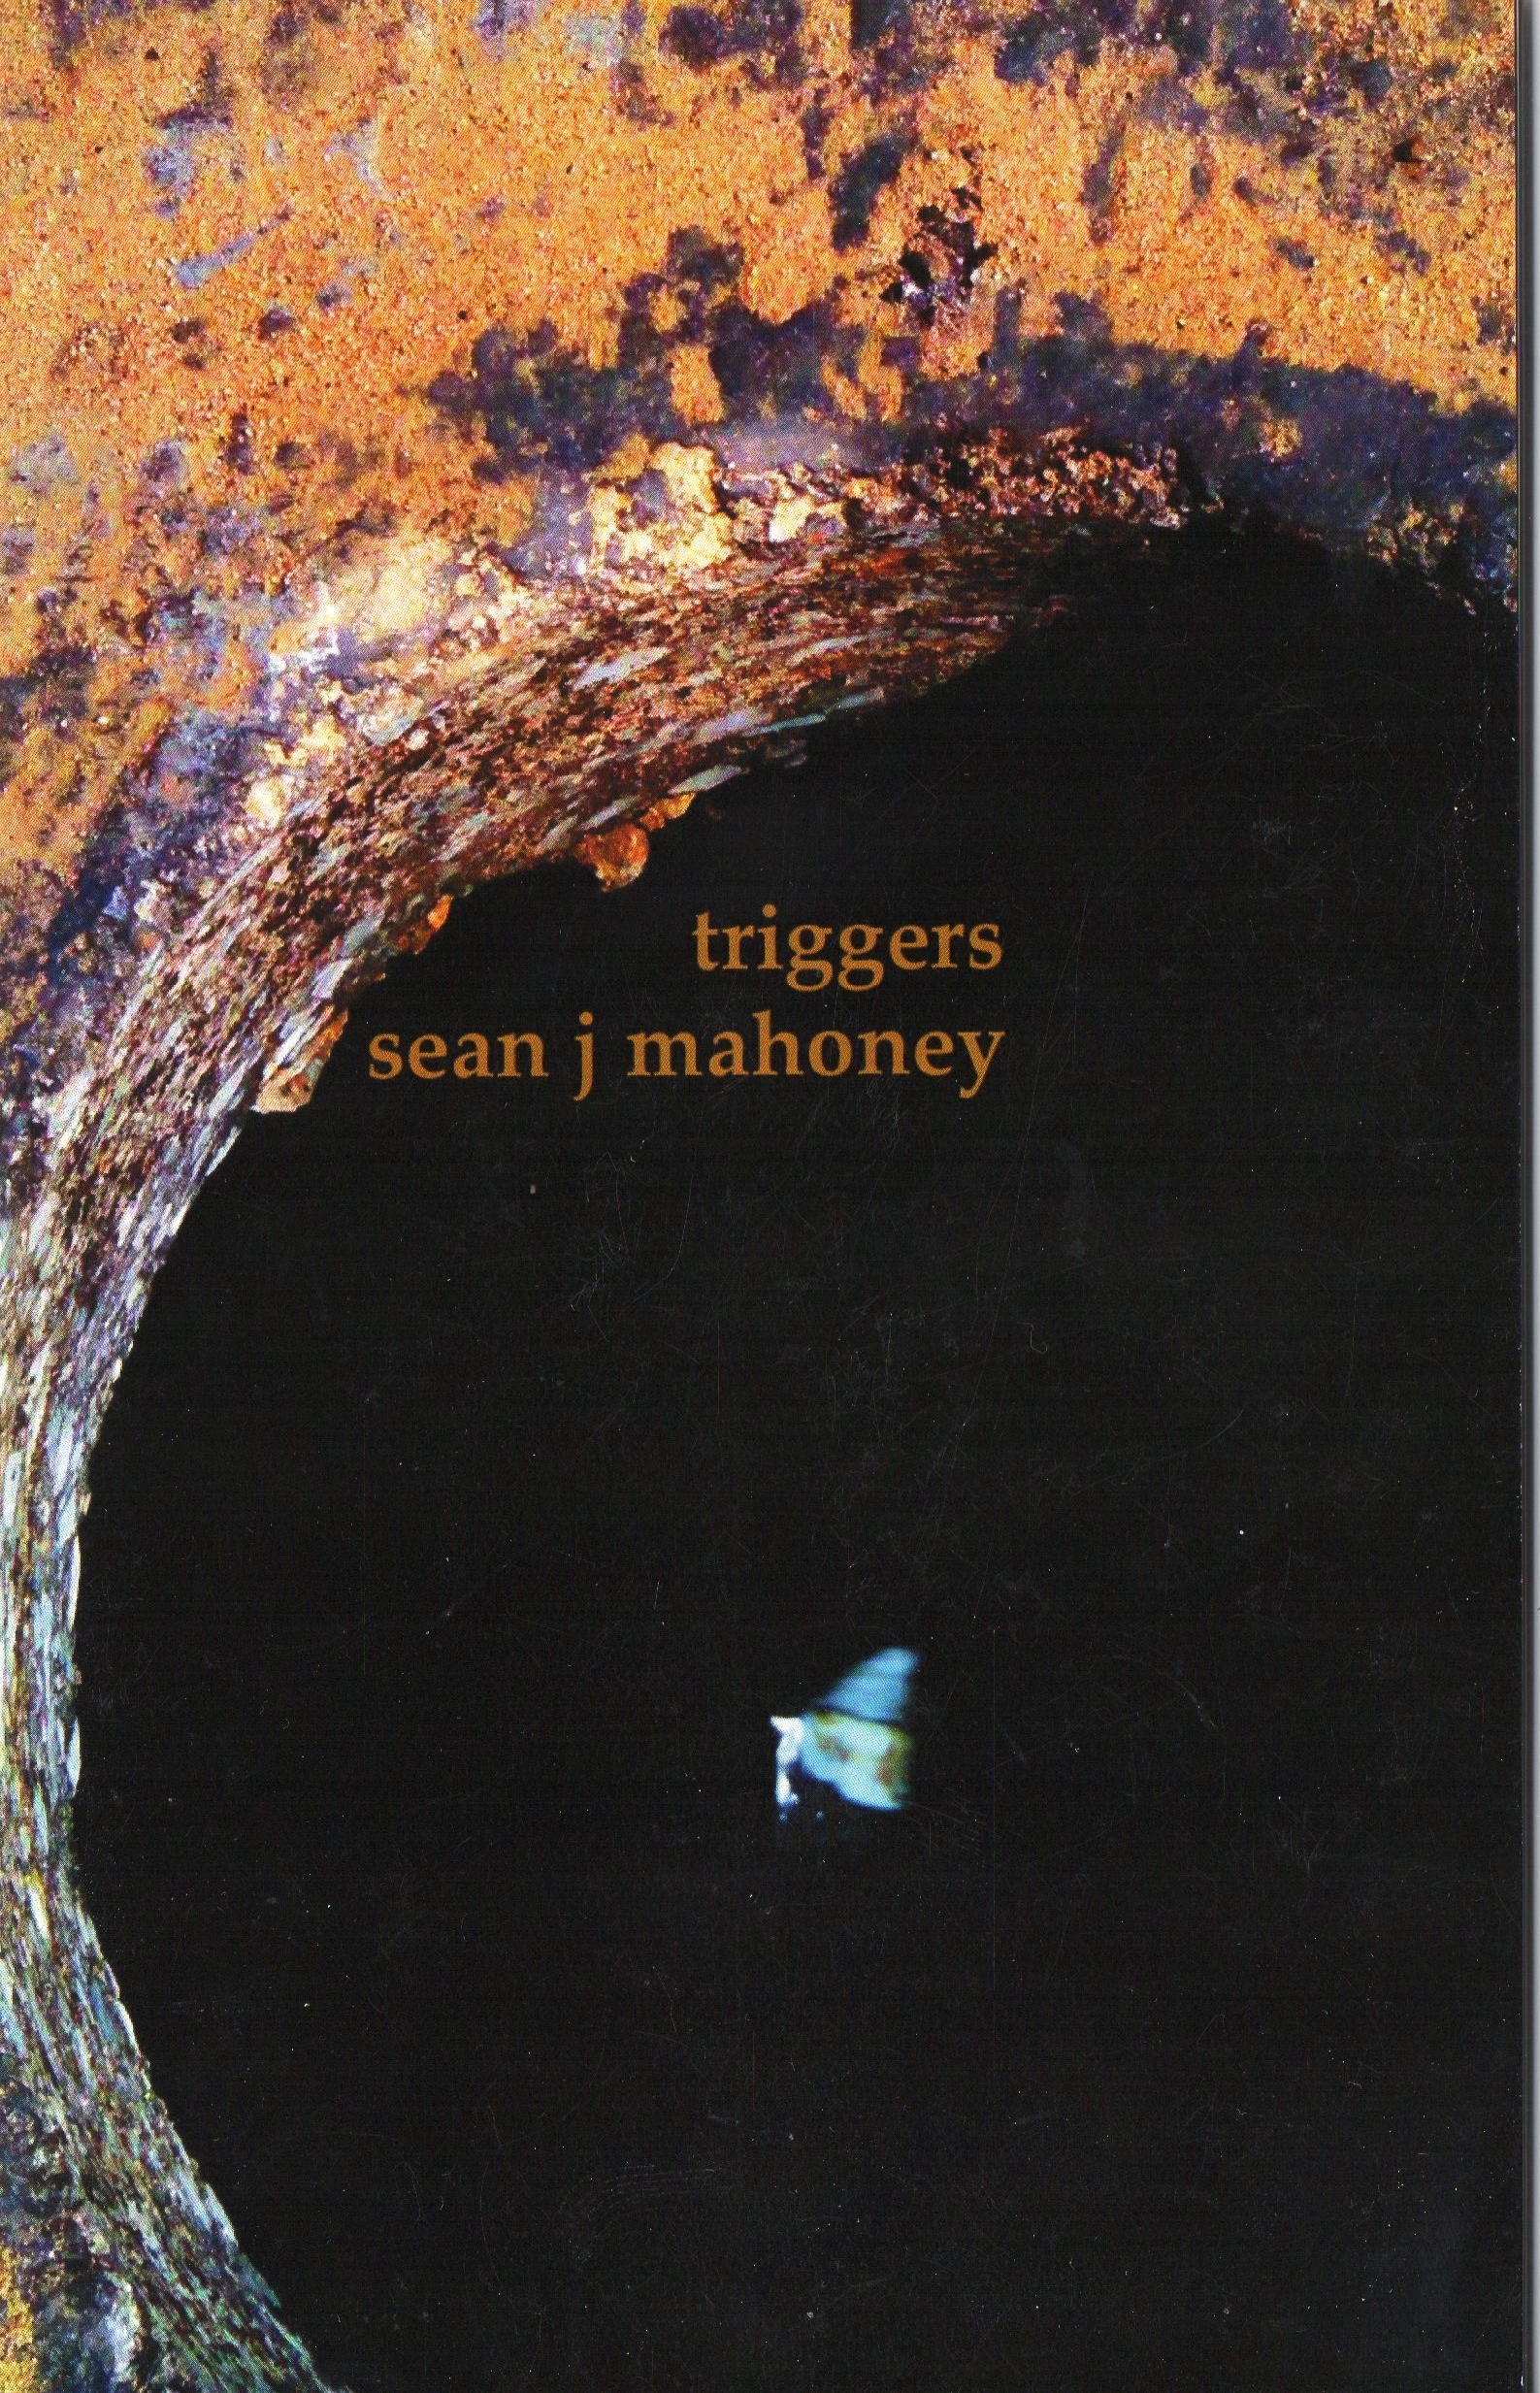 triggers by sean j mahoney